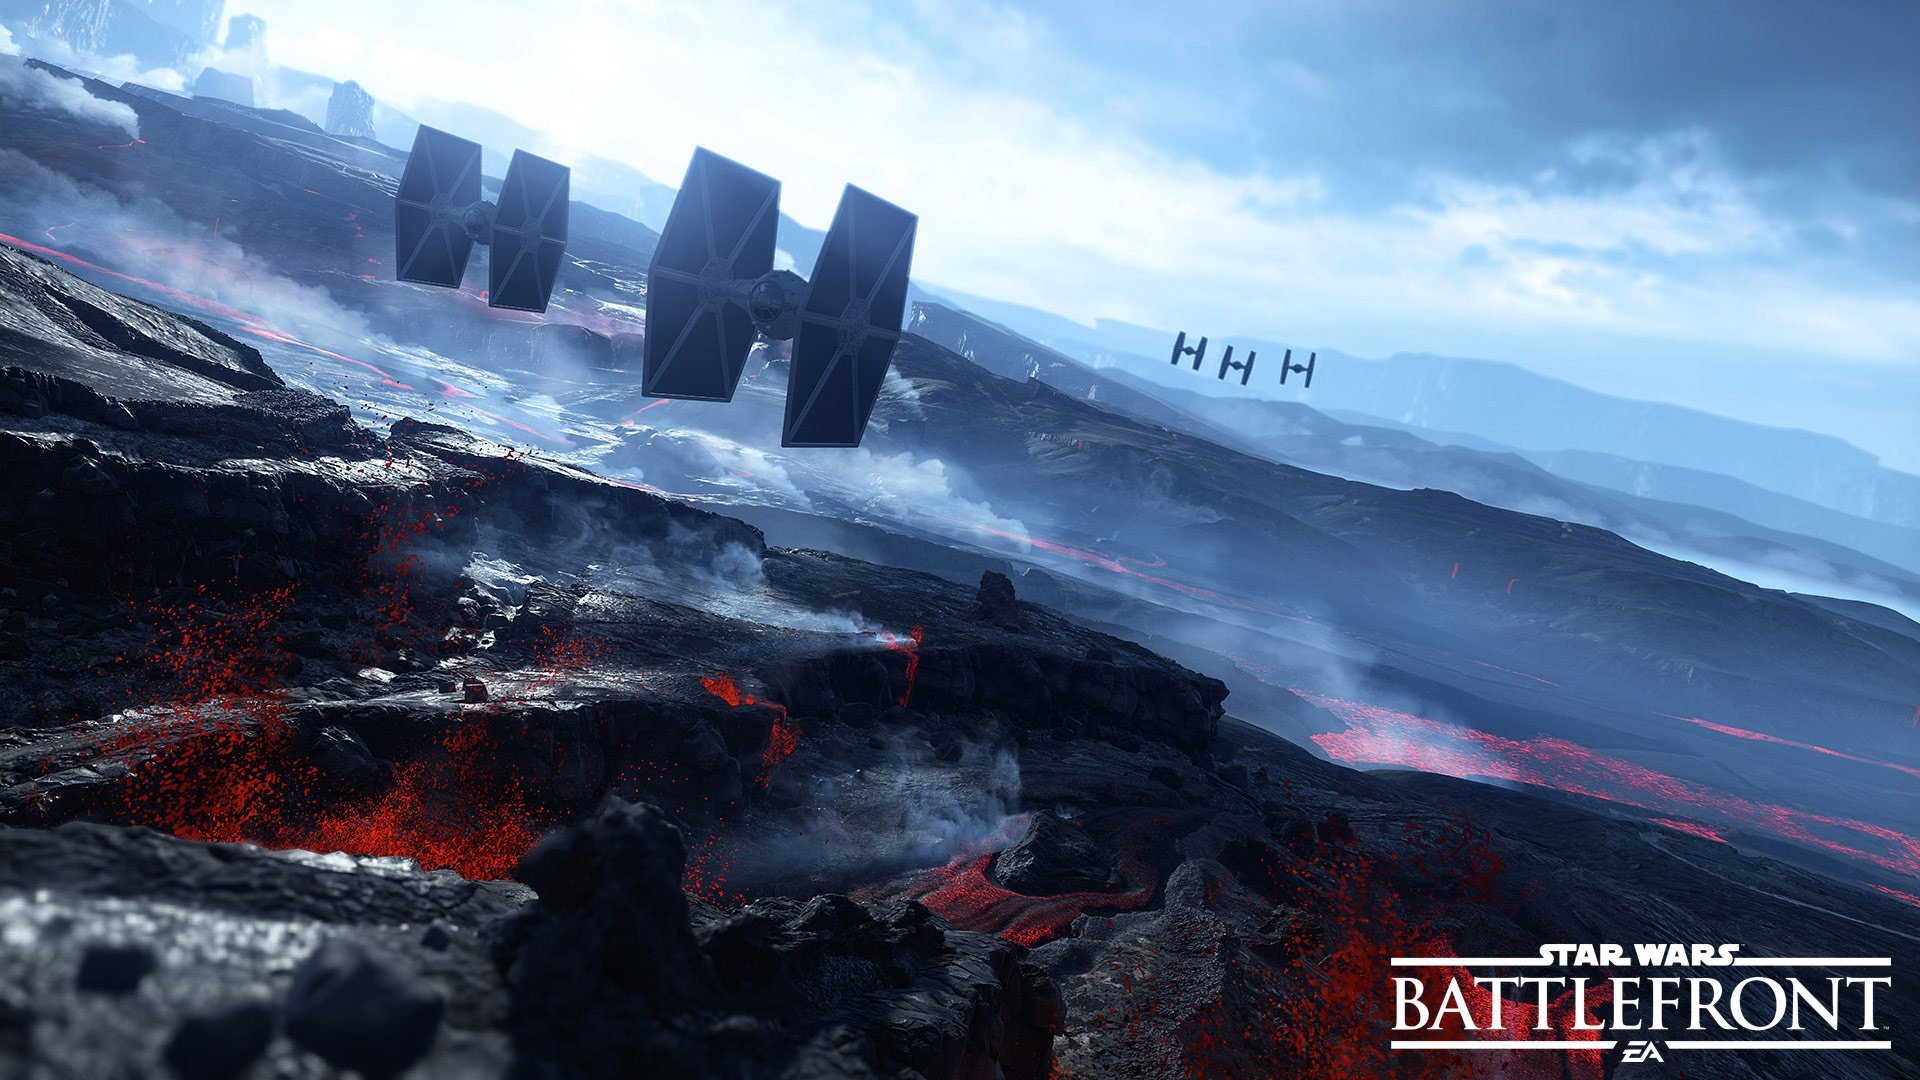 Star Wars Battlefront Sullust Wallpapers in jpg format for 1920x1080